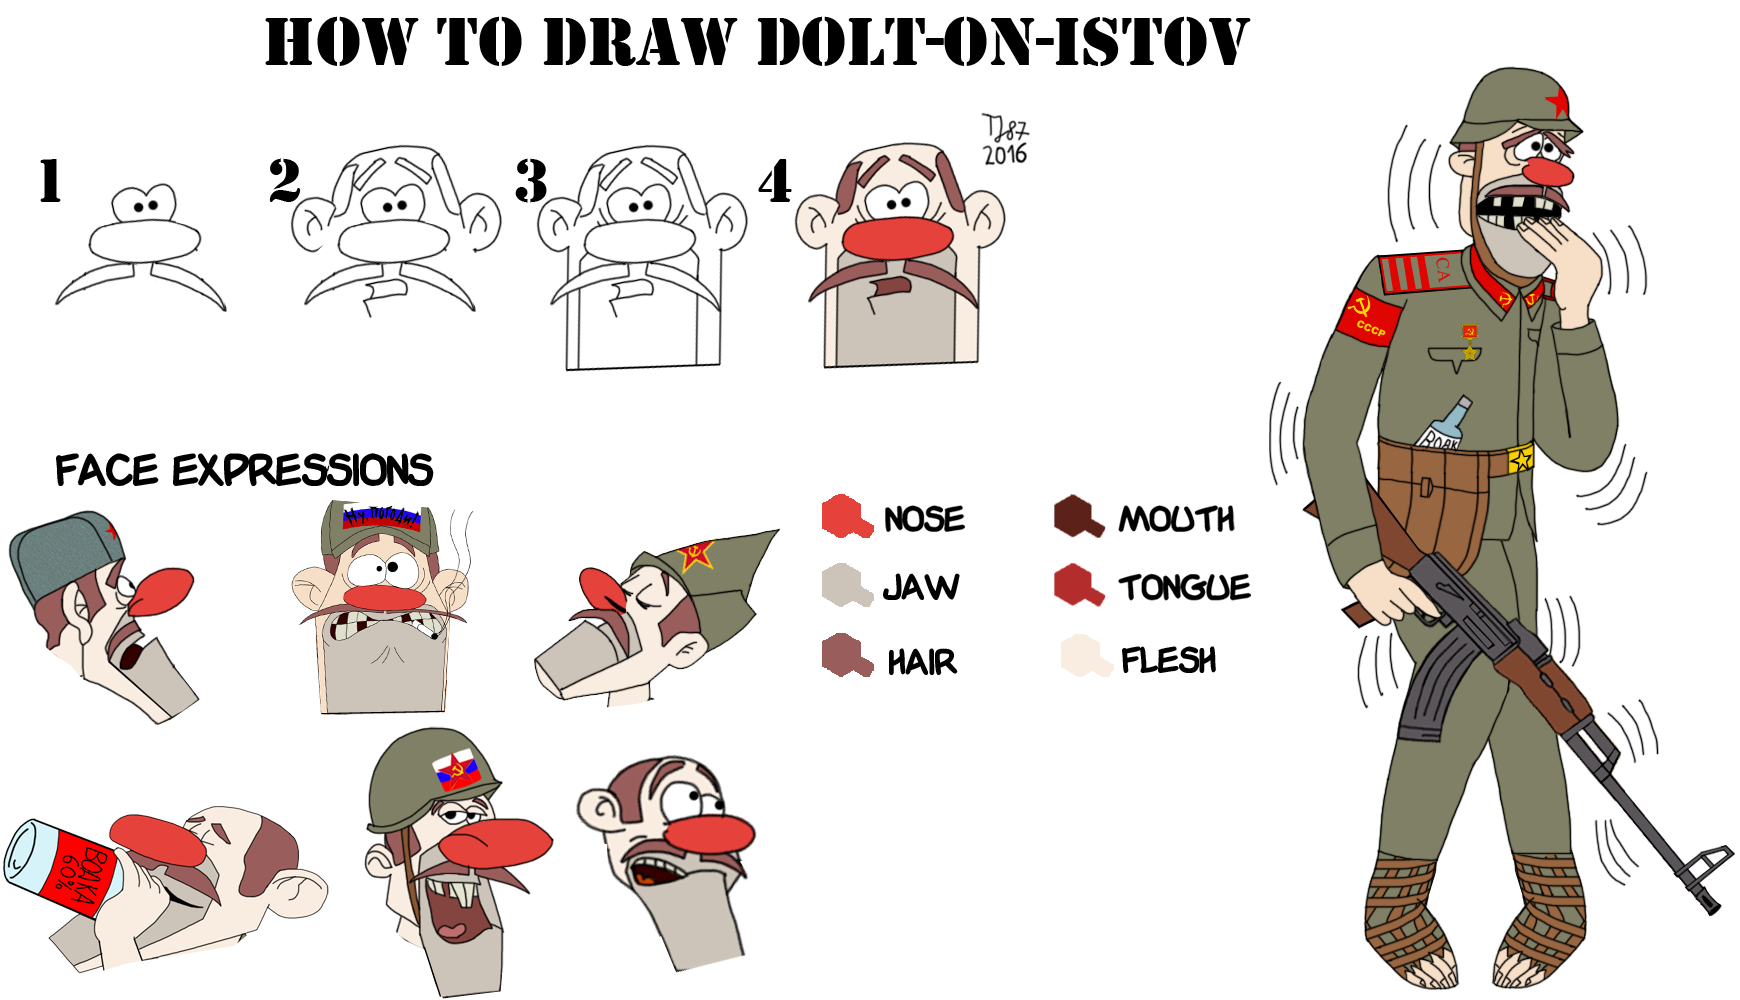 Dolt-on-ism: Dolty Tutorial step-by-step by TeeJay87